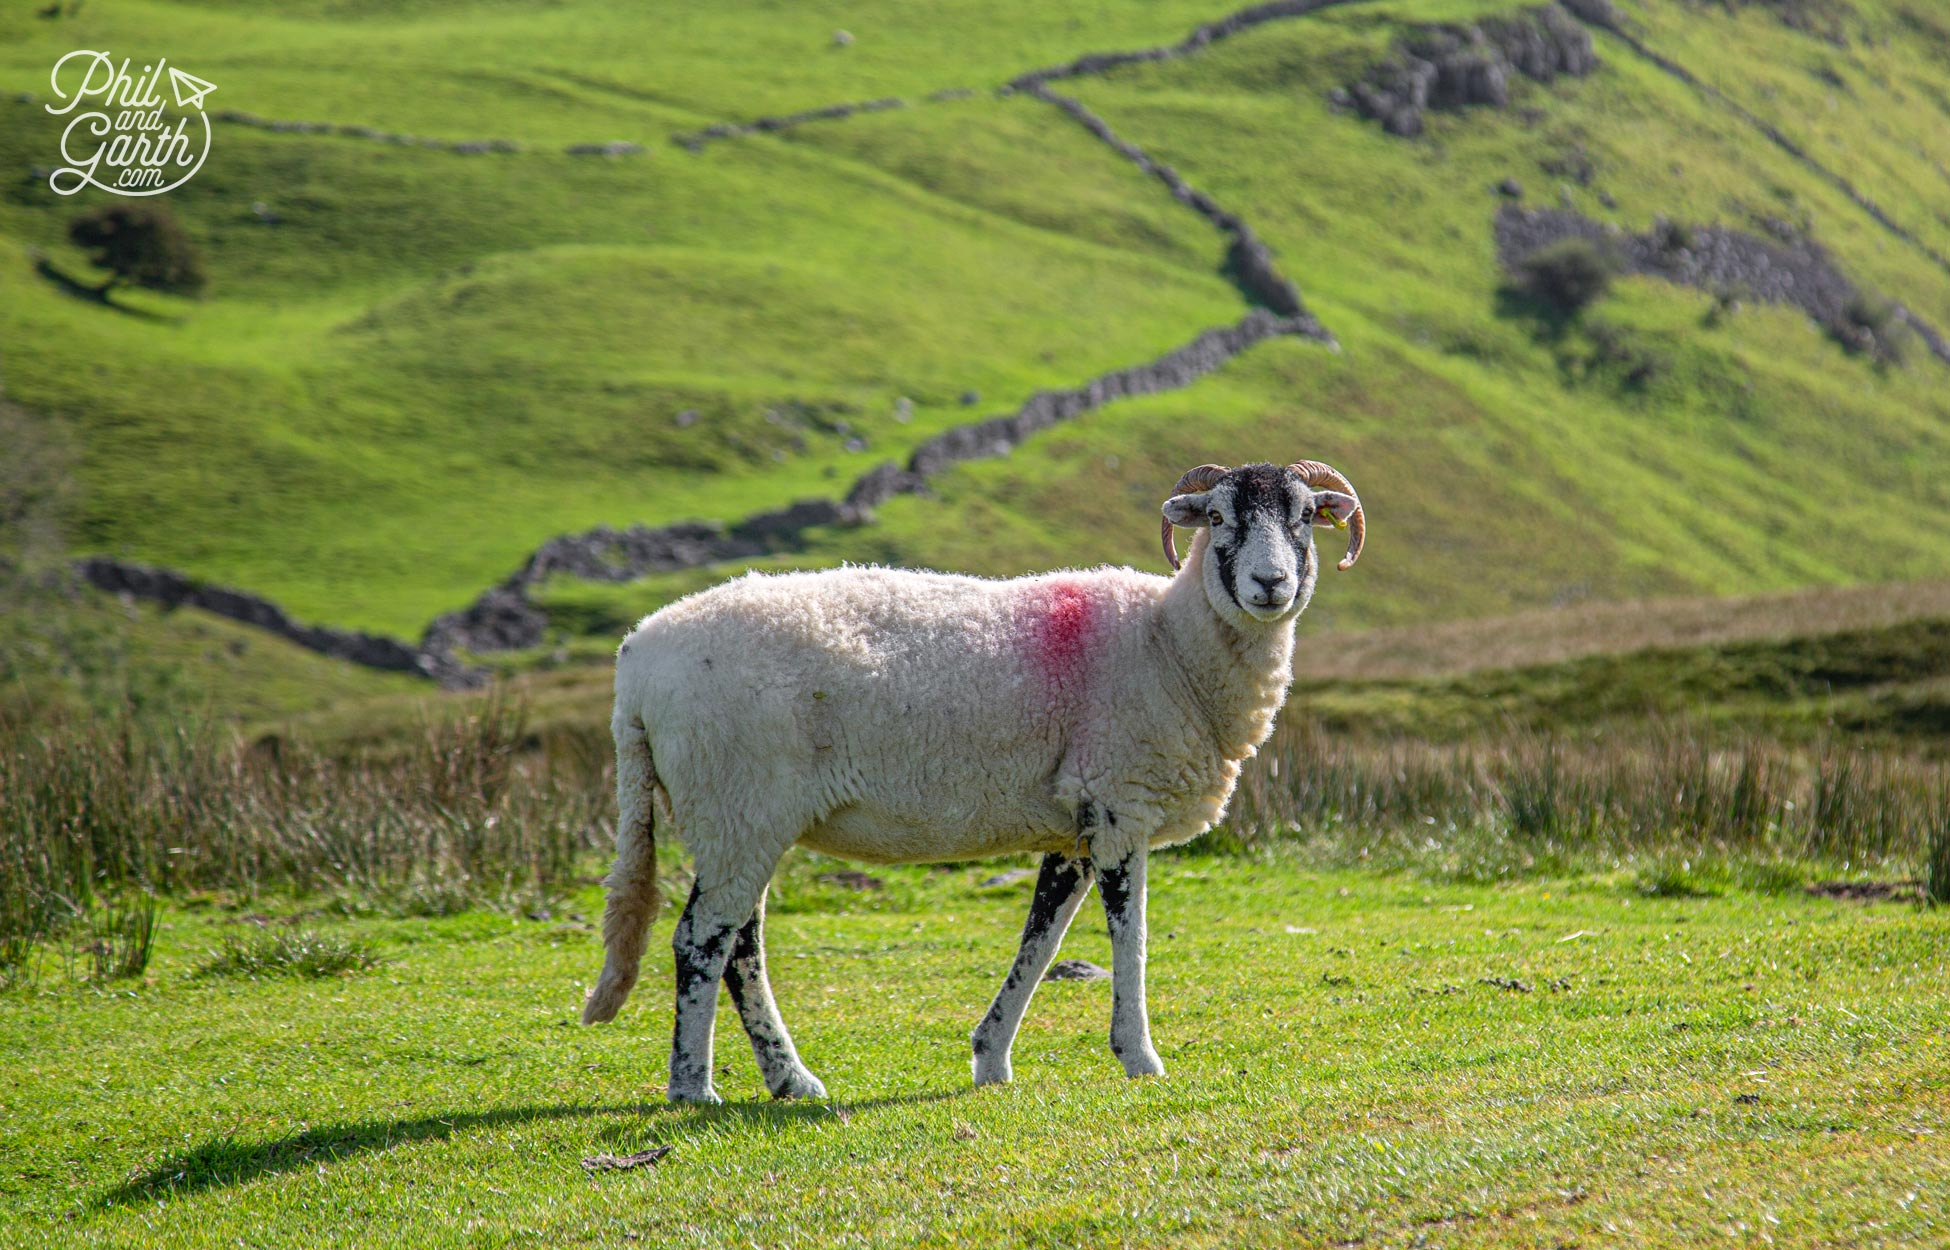 Swaledale sheep with their curly horns are an iconic sight in the Yorkshire Dales